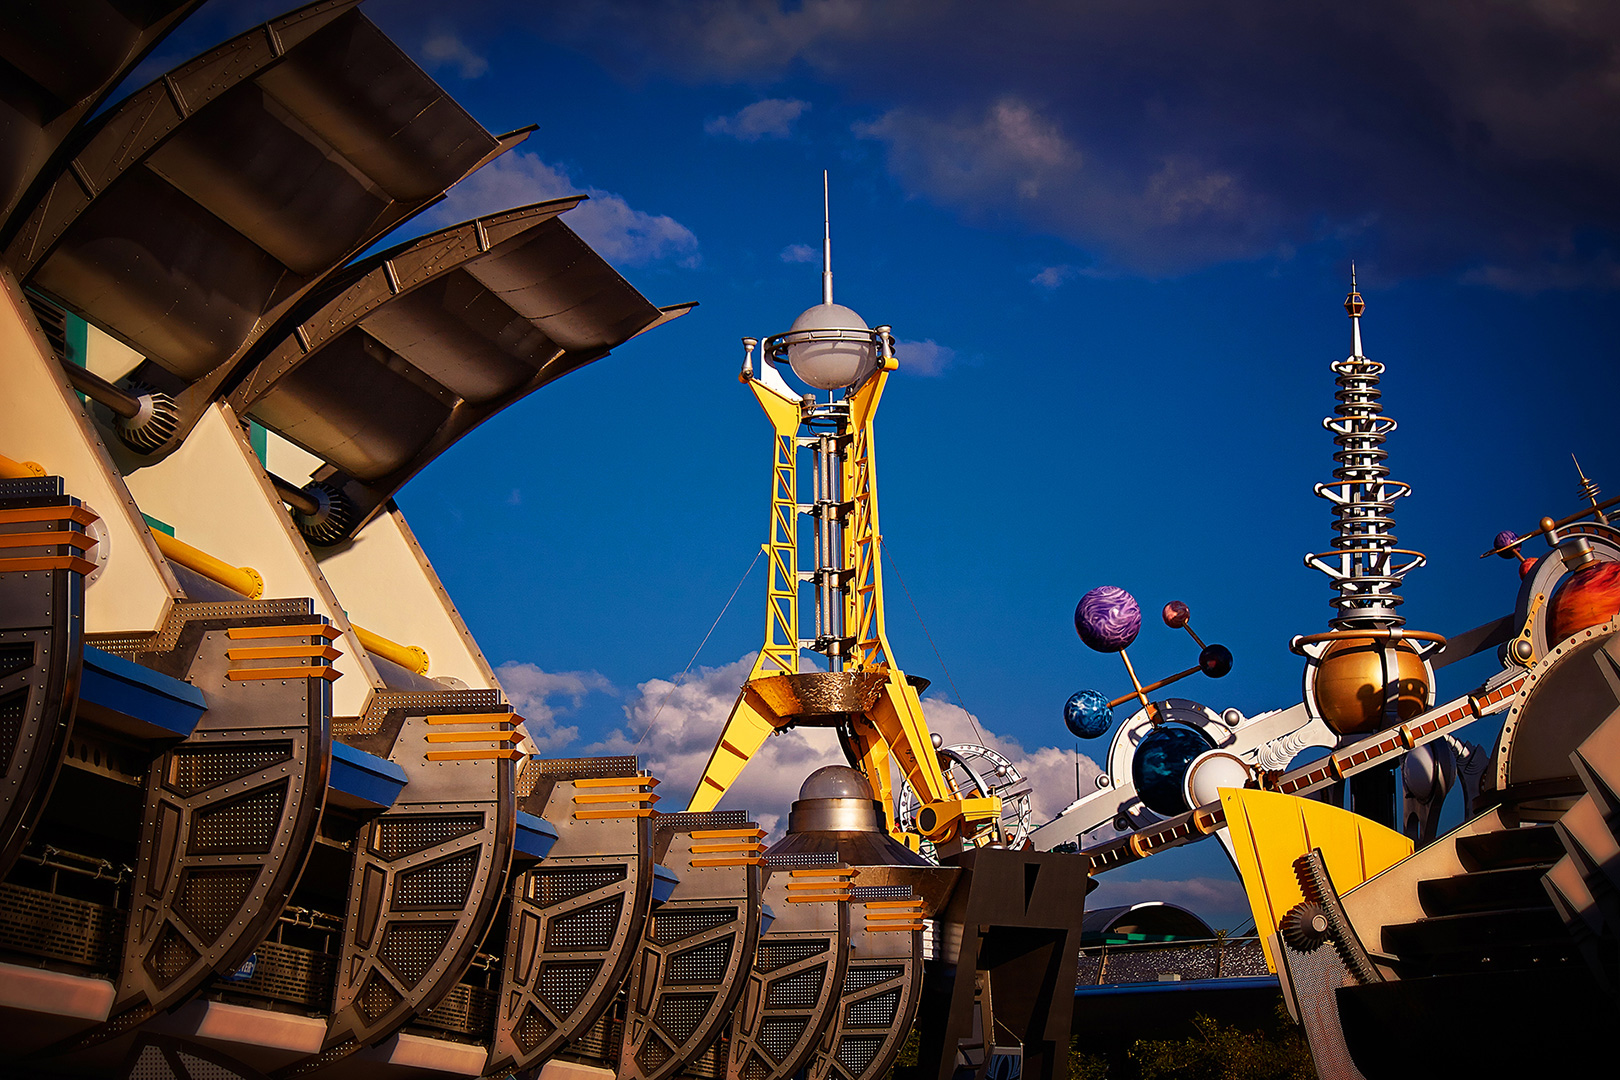 Disney Photography, Disney World Photography, Disneyland Photography, Disney Photos, Disney Pictures, Walt Disney World, The Magic Kingdom, Walt Disney, Mickey Mouse, Orlando, Florida, Theme Park,  Tomorroland, Detail, Astro Orbiter